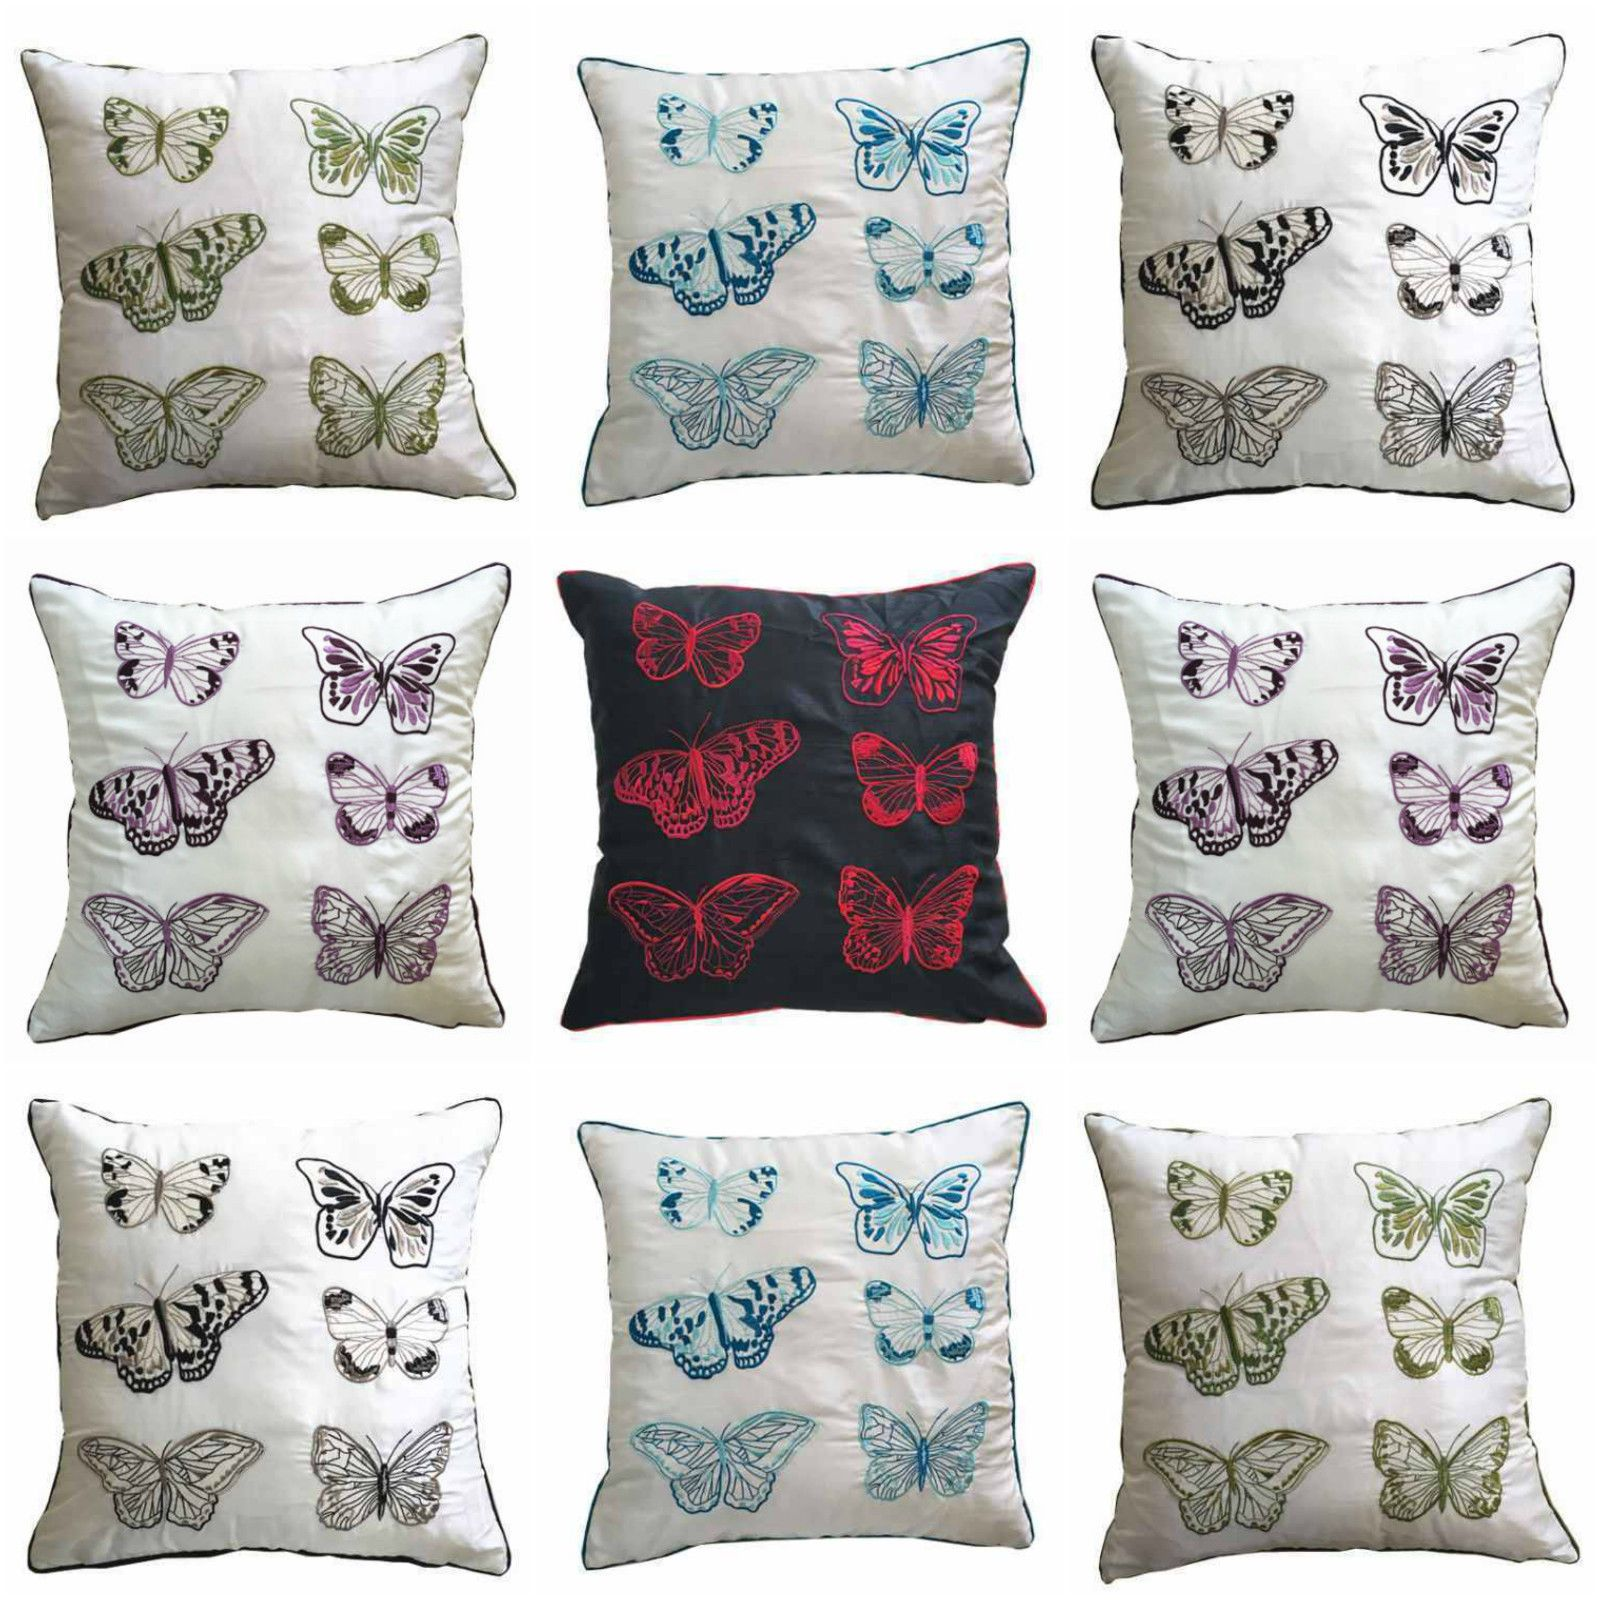 Enchanted butterflies cushion cover u linens range bedding in